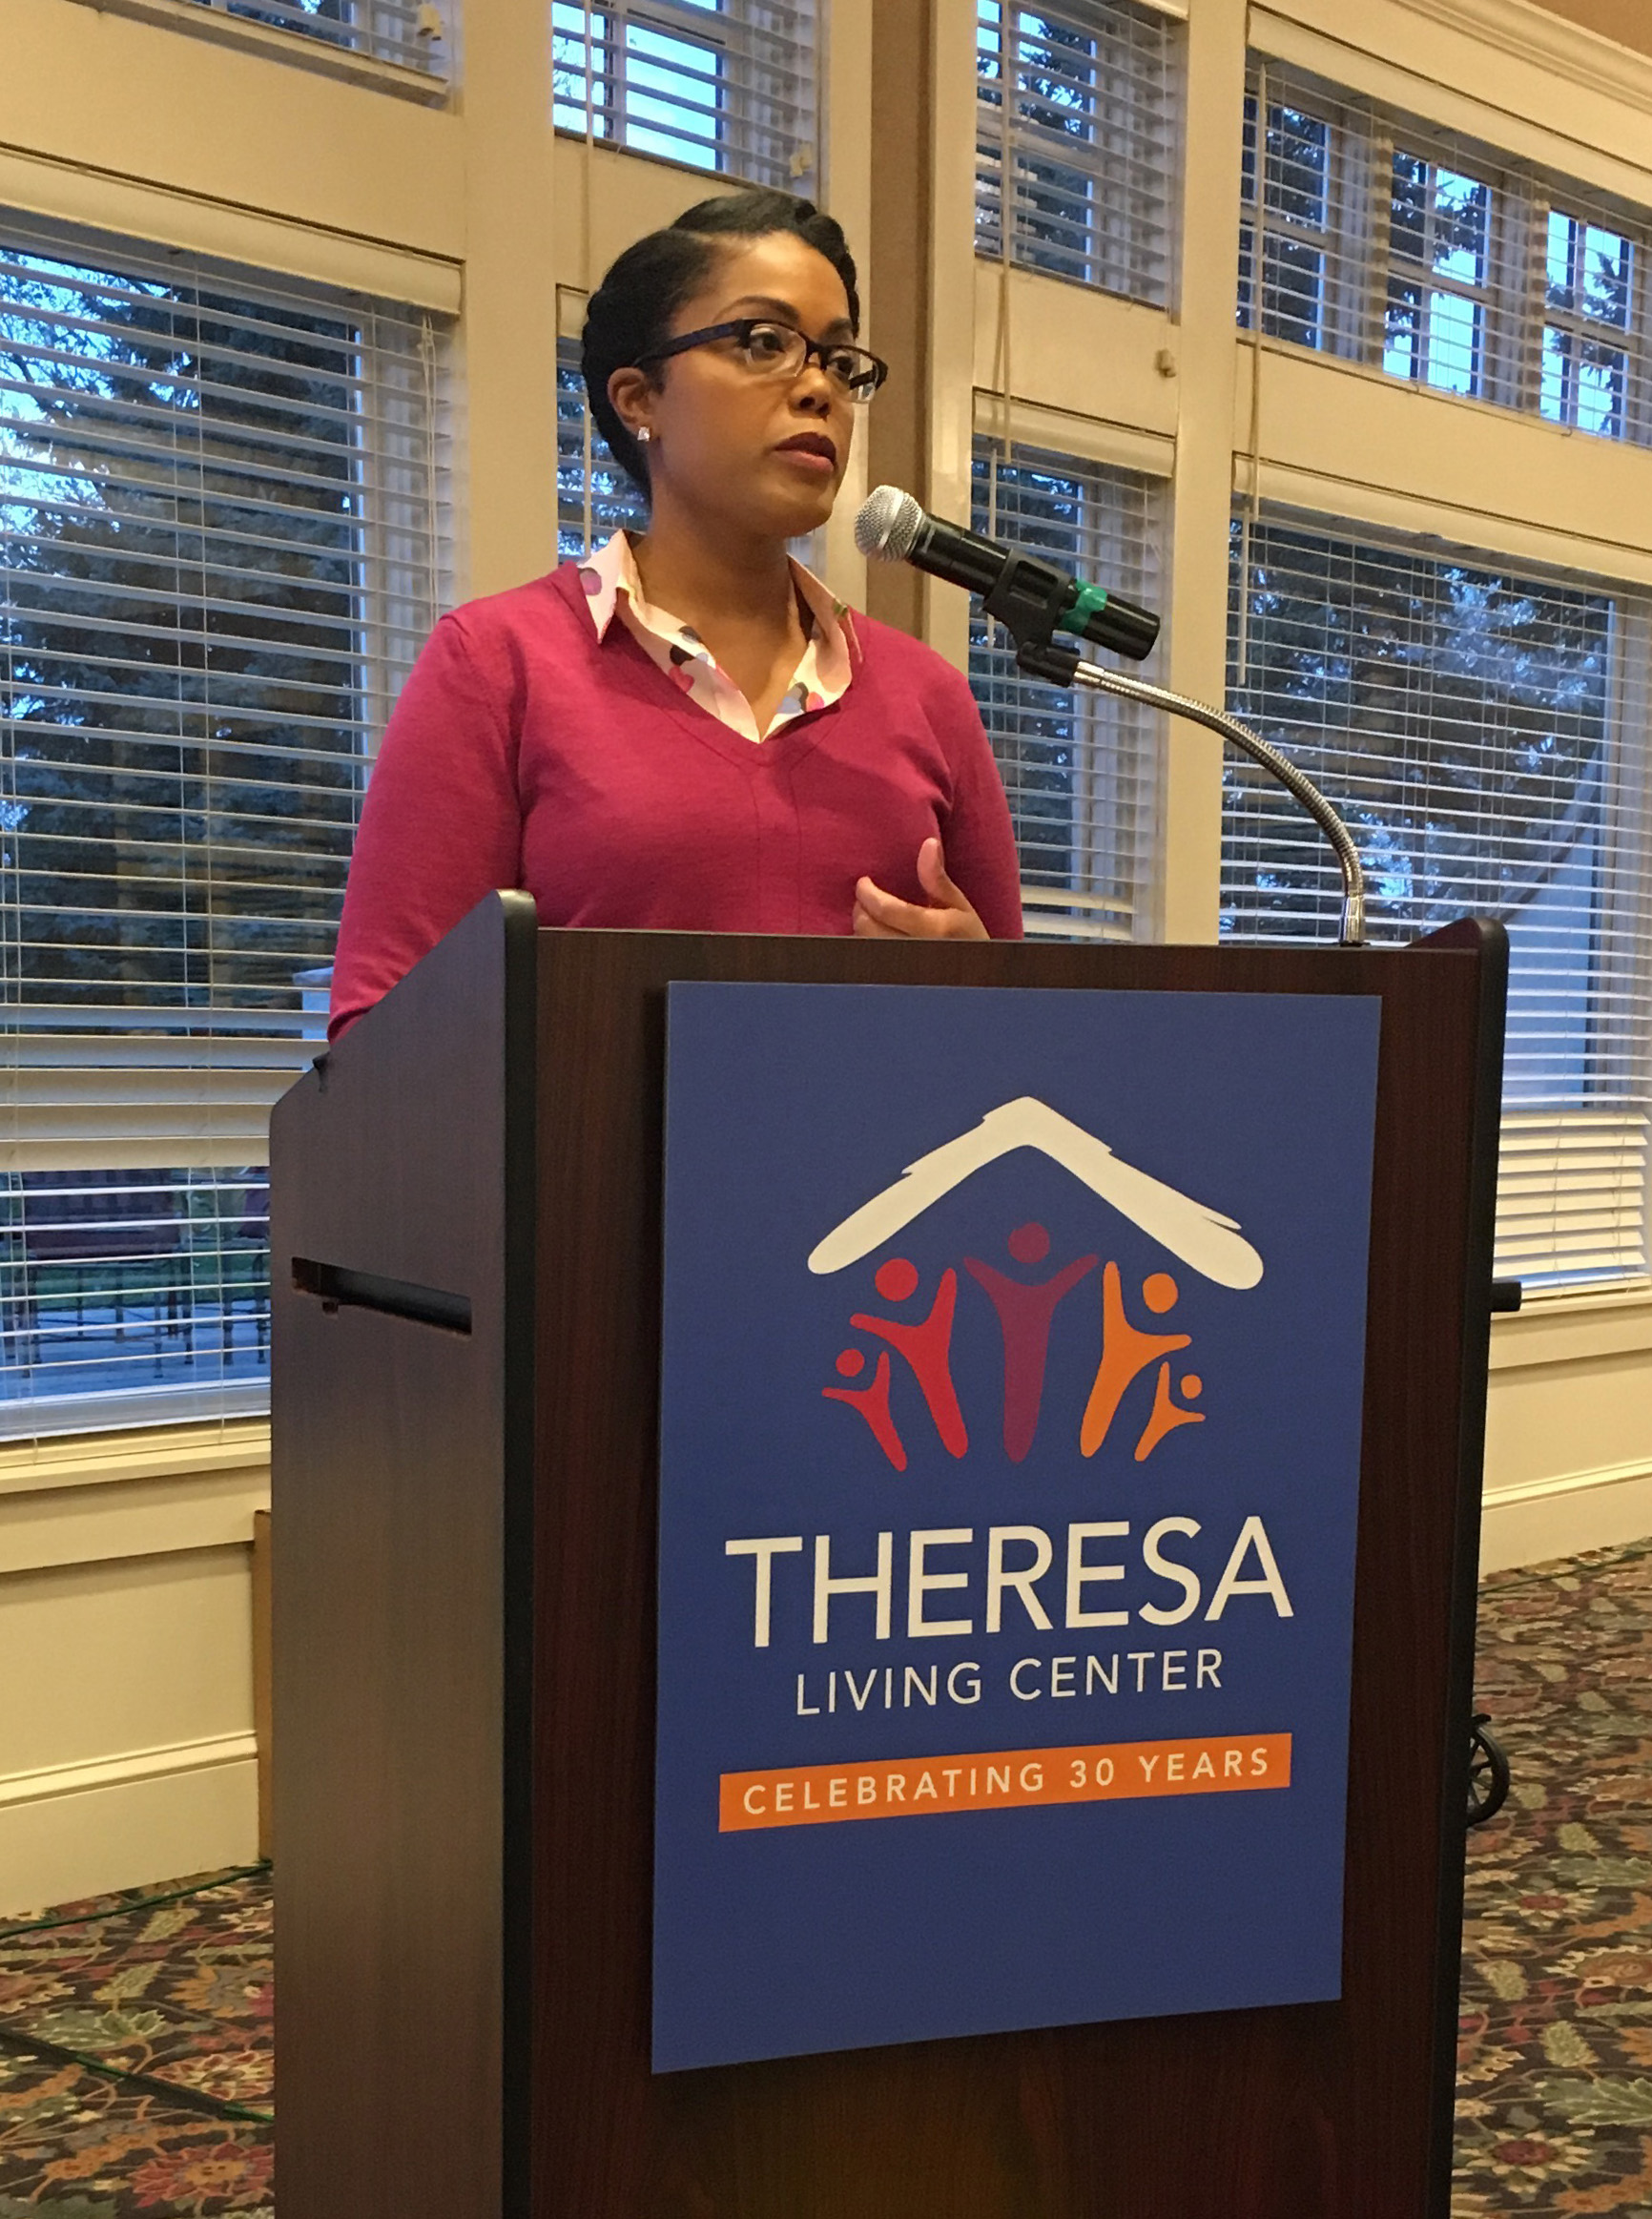 Keynote speaker Acooa Ellis, Senior Vice president of Community Impact for the Greater Twin Cities United Way, spoke about the challenges of addressing homelessness in the Twin Cities.